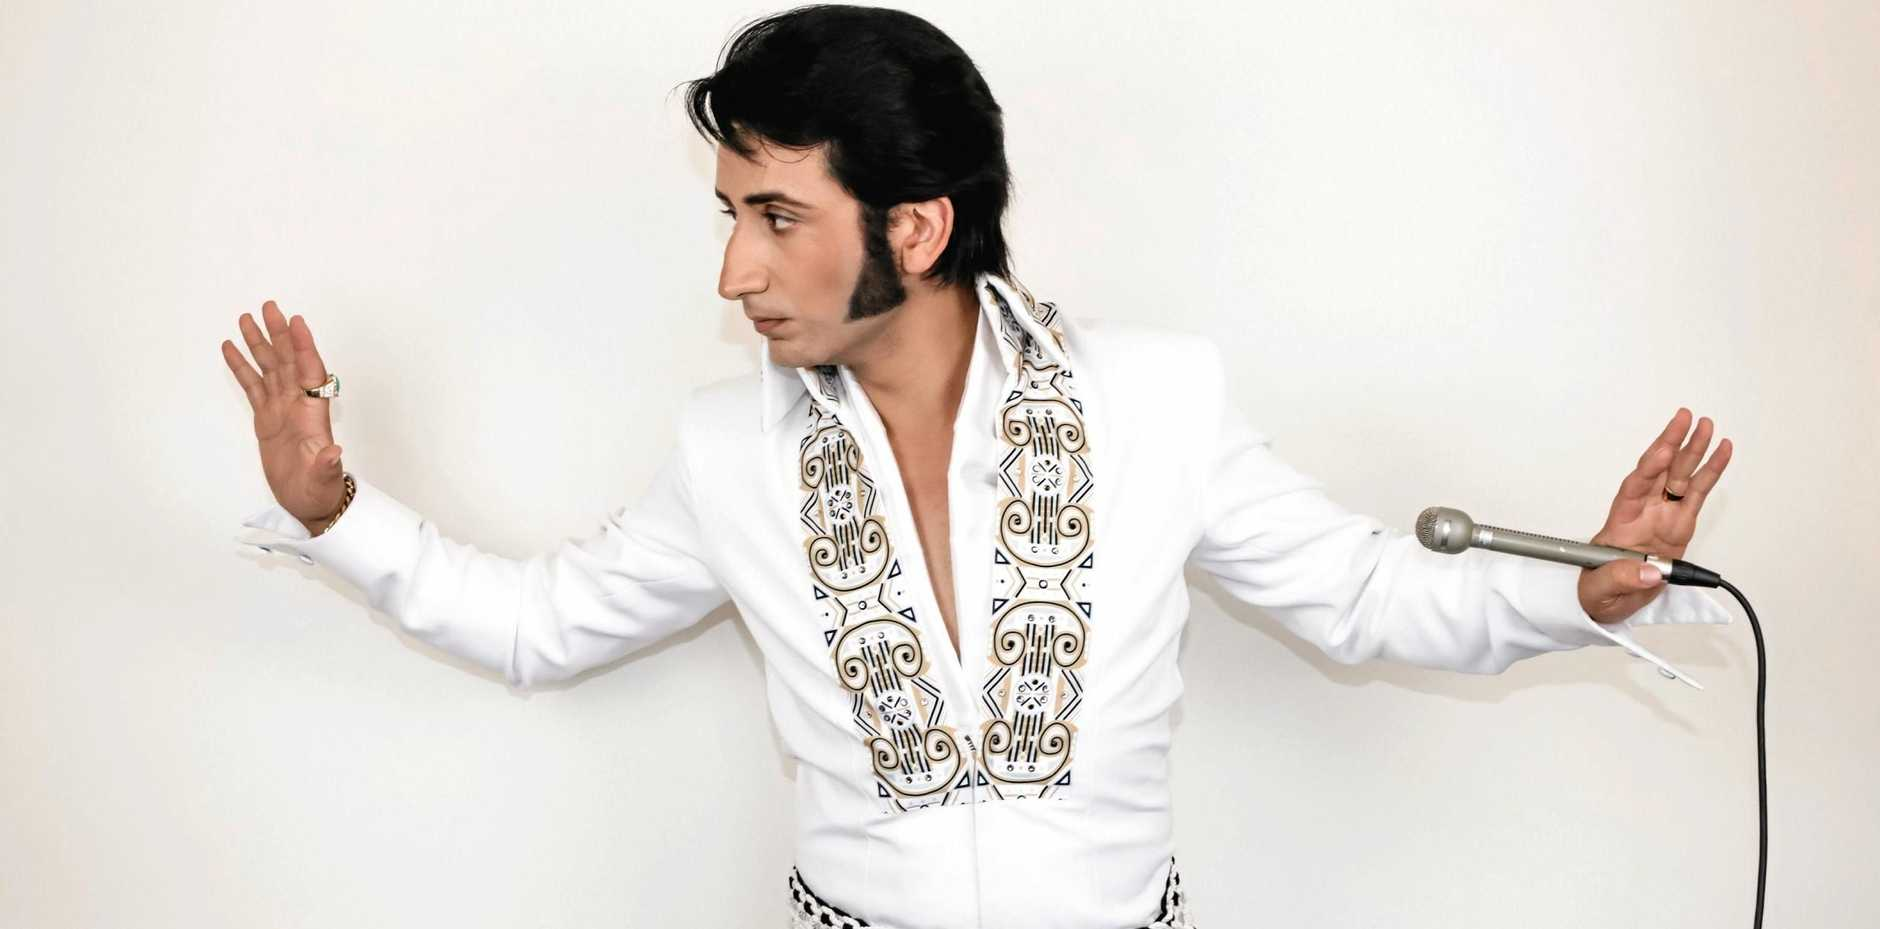 ULTIMATE ELVIS: Sean Luke Spiteri is known as one of the finest Elvis tribute artists in the country and is the feature performer on Saturday, February 17.